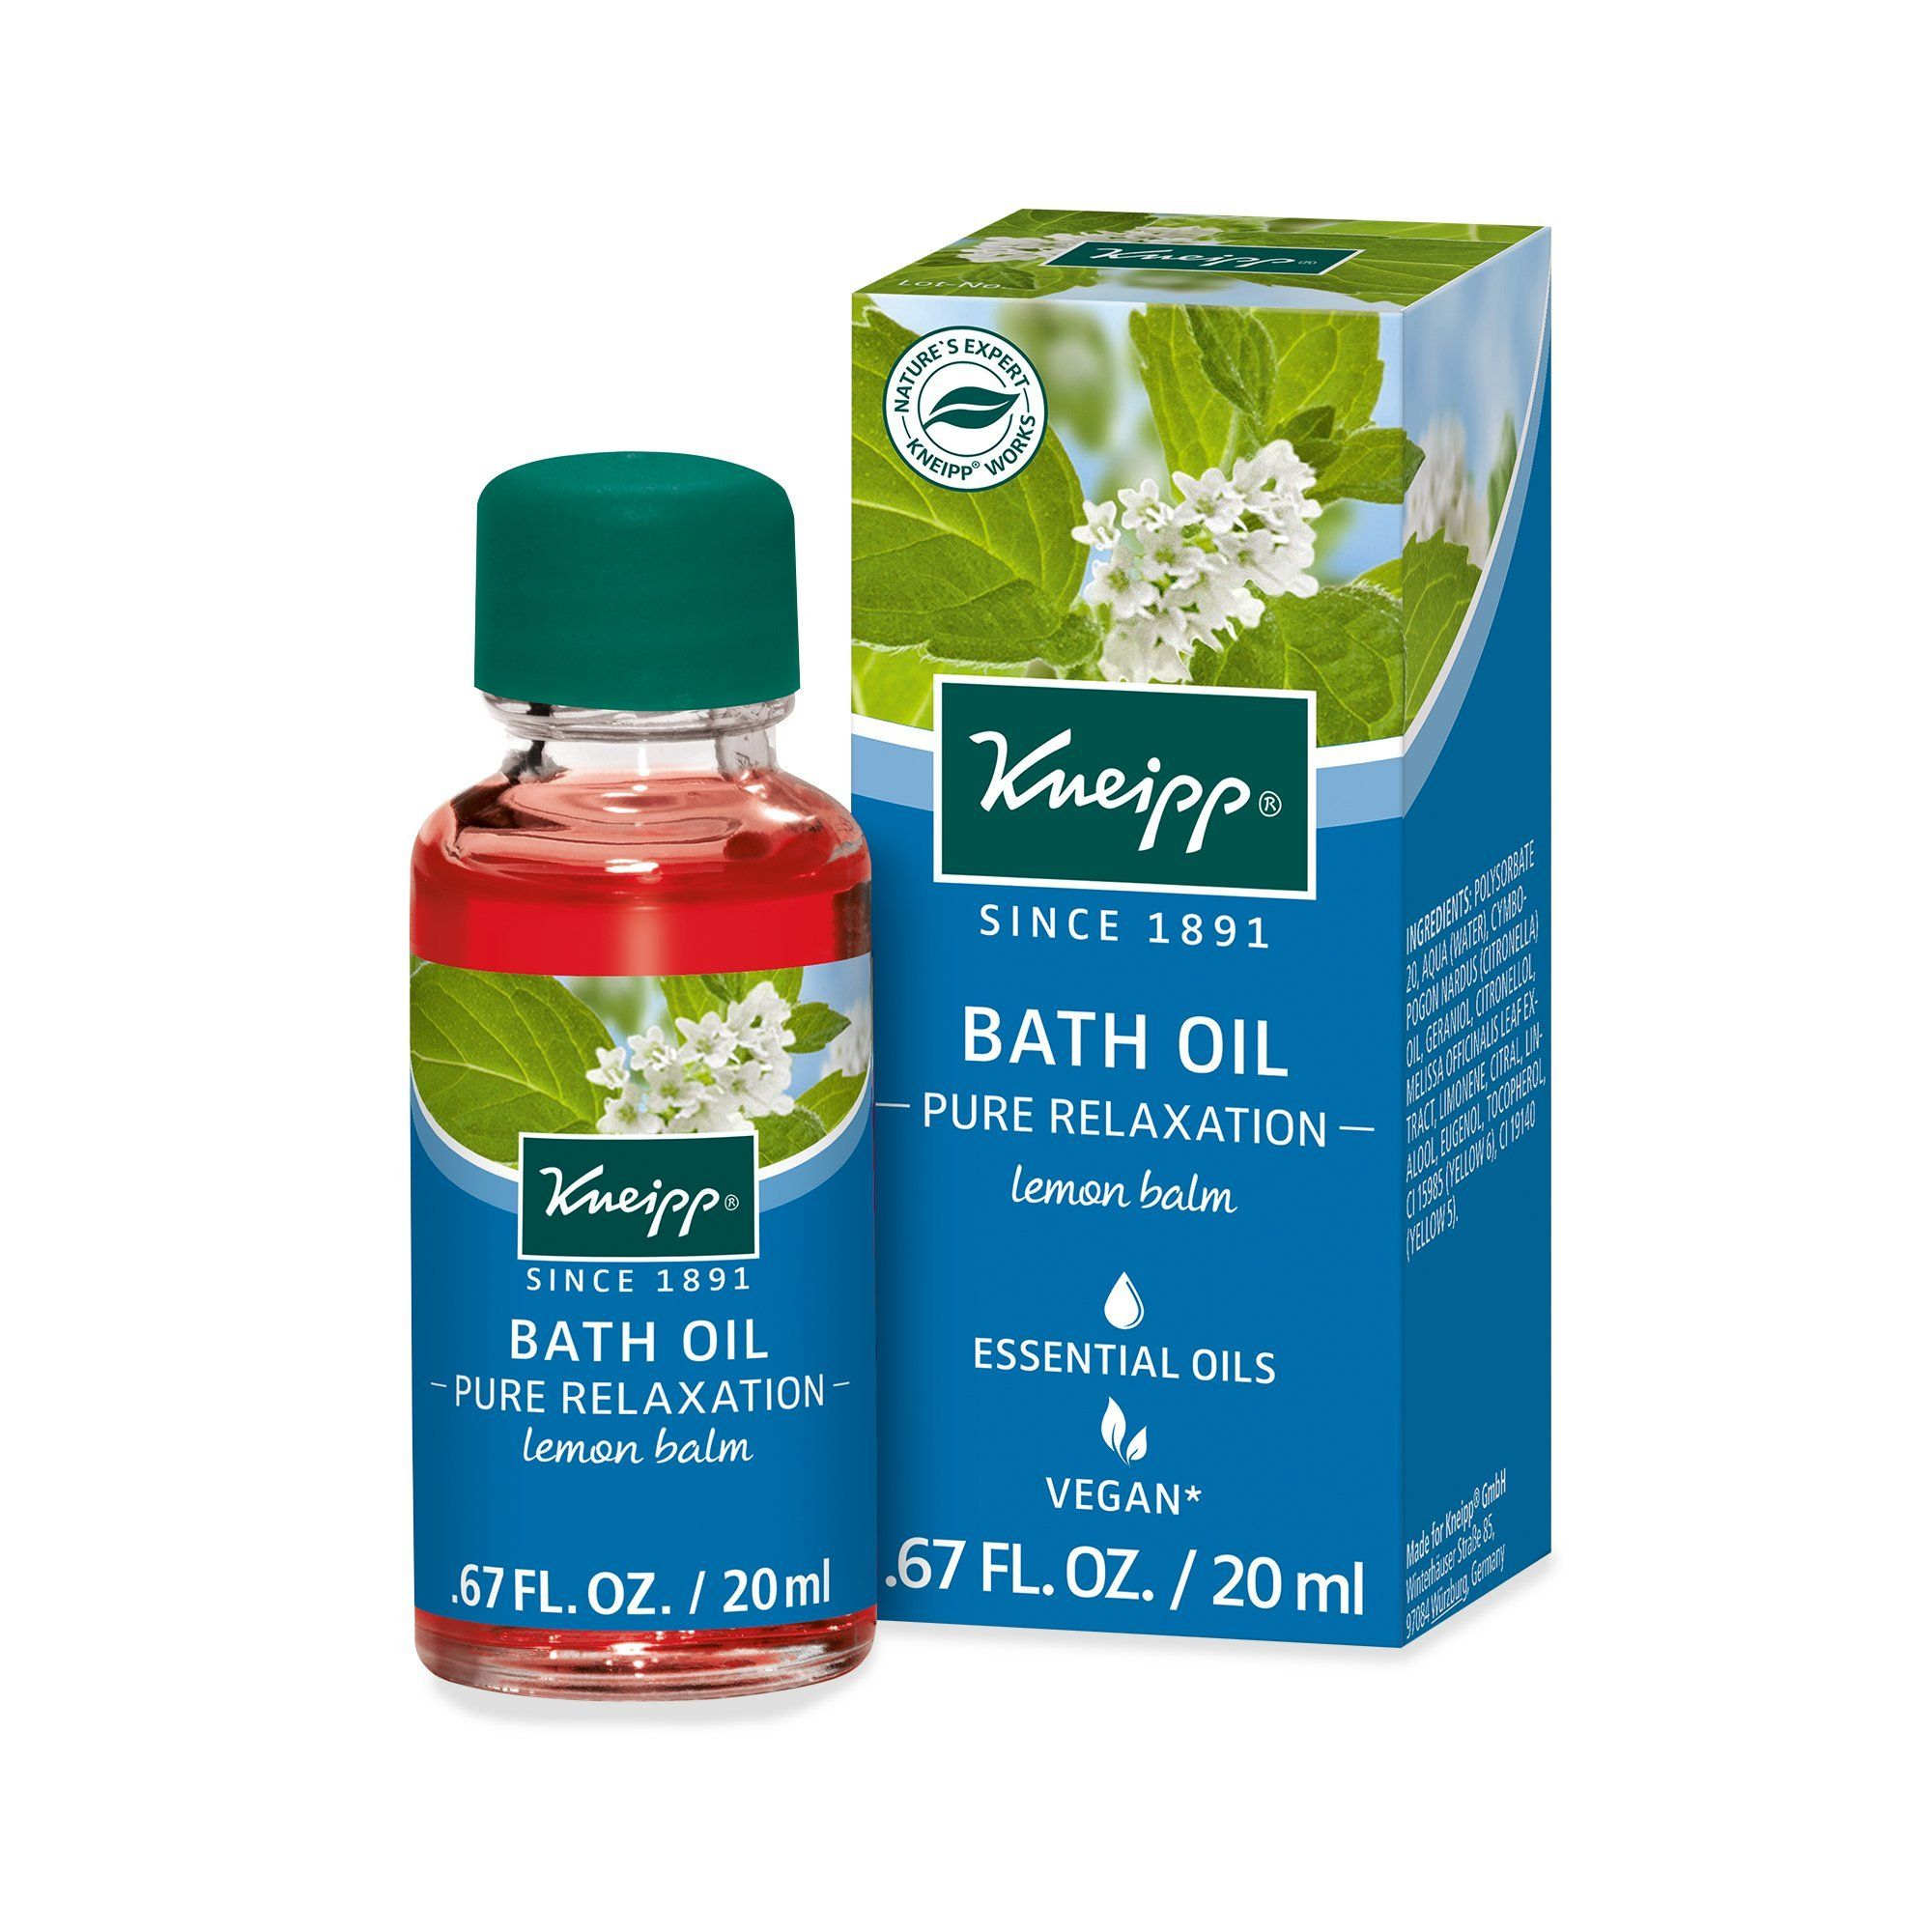 Kneipp Pure Relaxation Bath Oil Bath Oils Pure Products Oil Body Wash